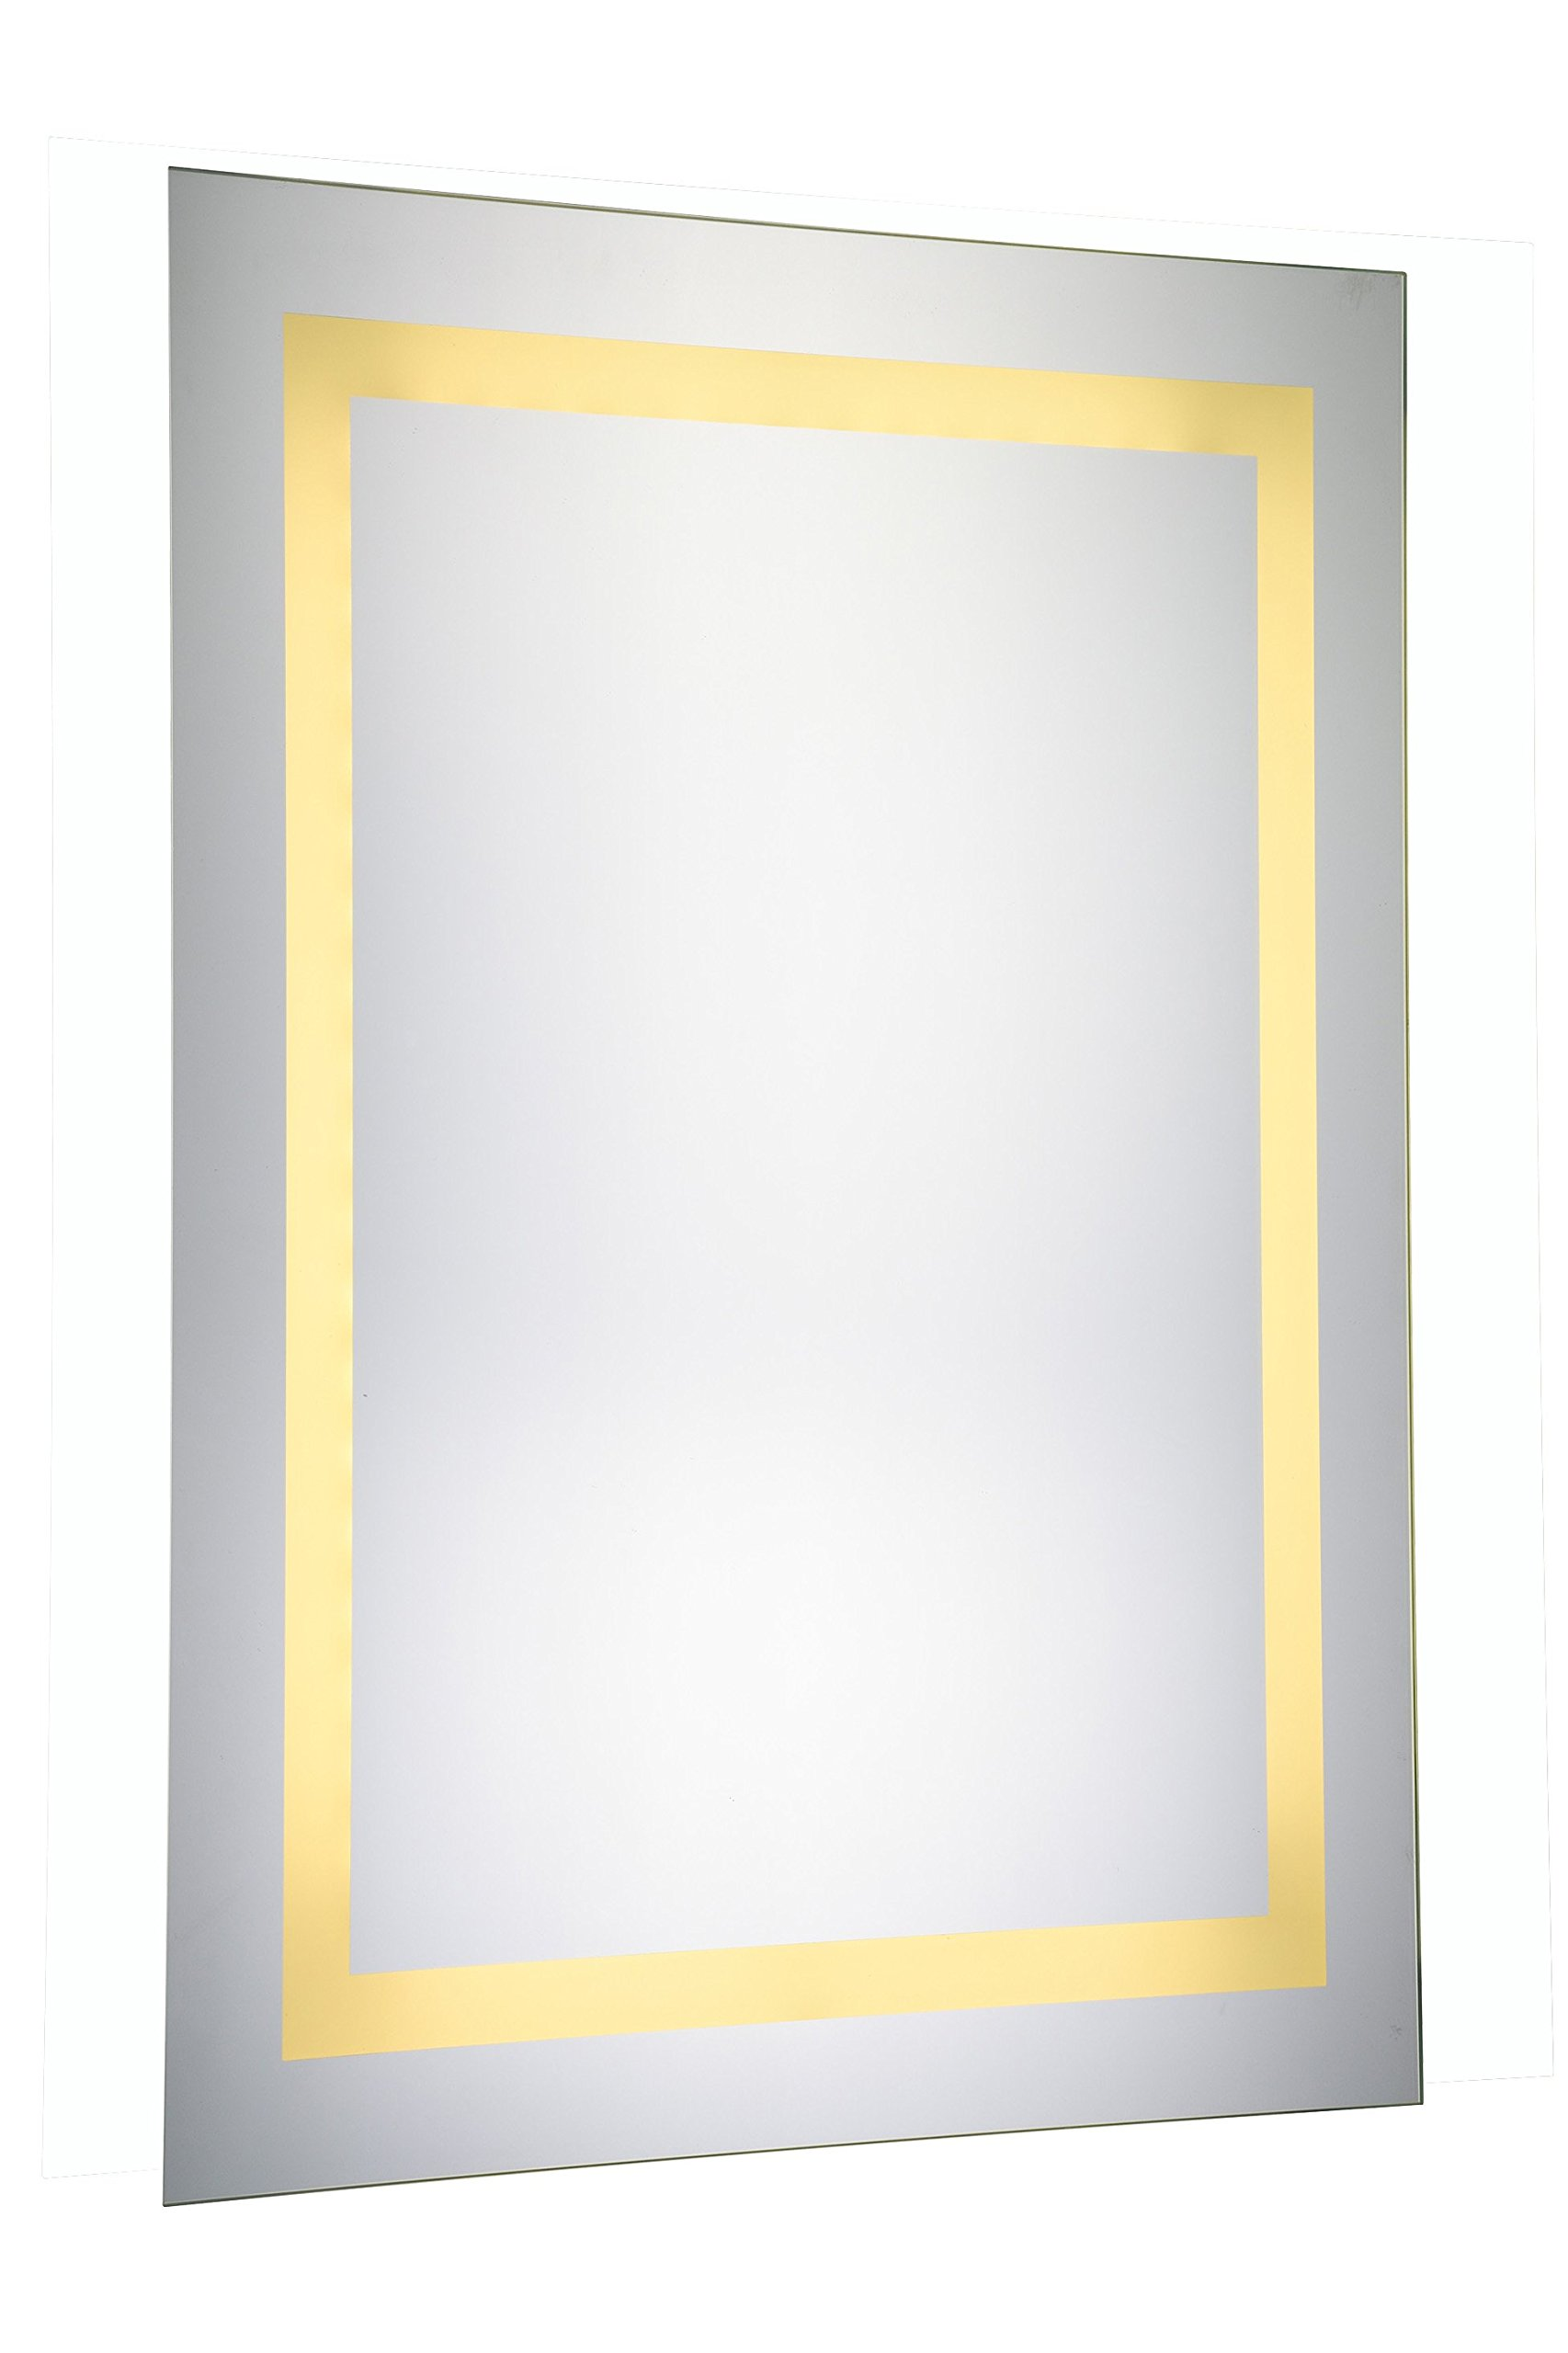 Elegant Decor Mre-6012 Dimmable 3000K LED Electric Mirror Rectangle, 20'' Width x 40'' Height